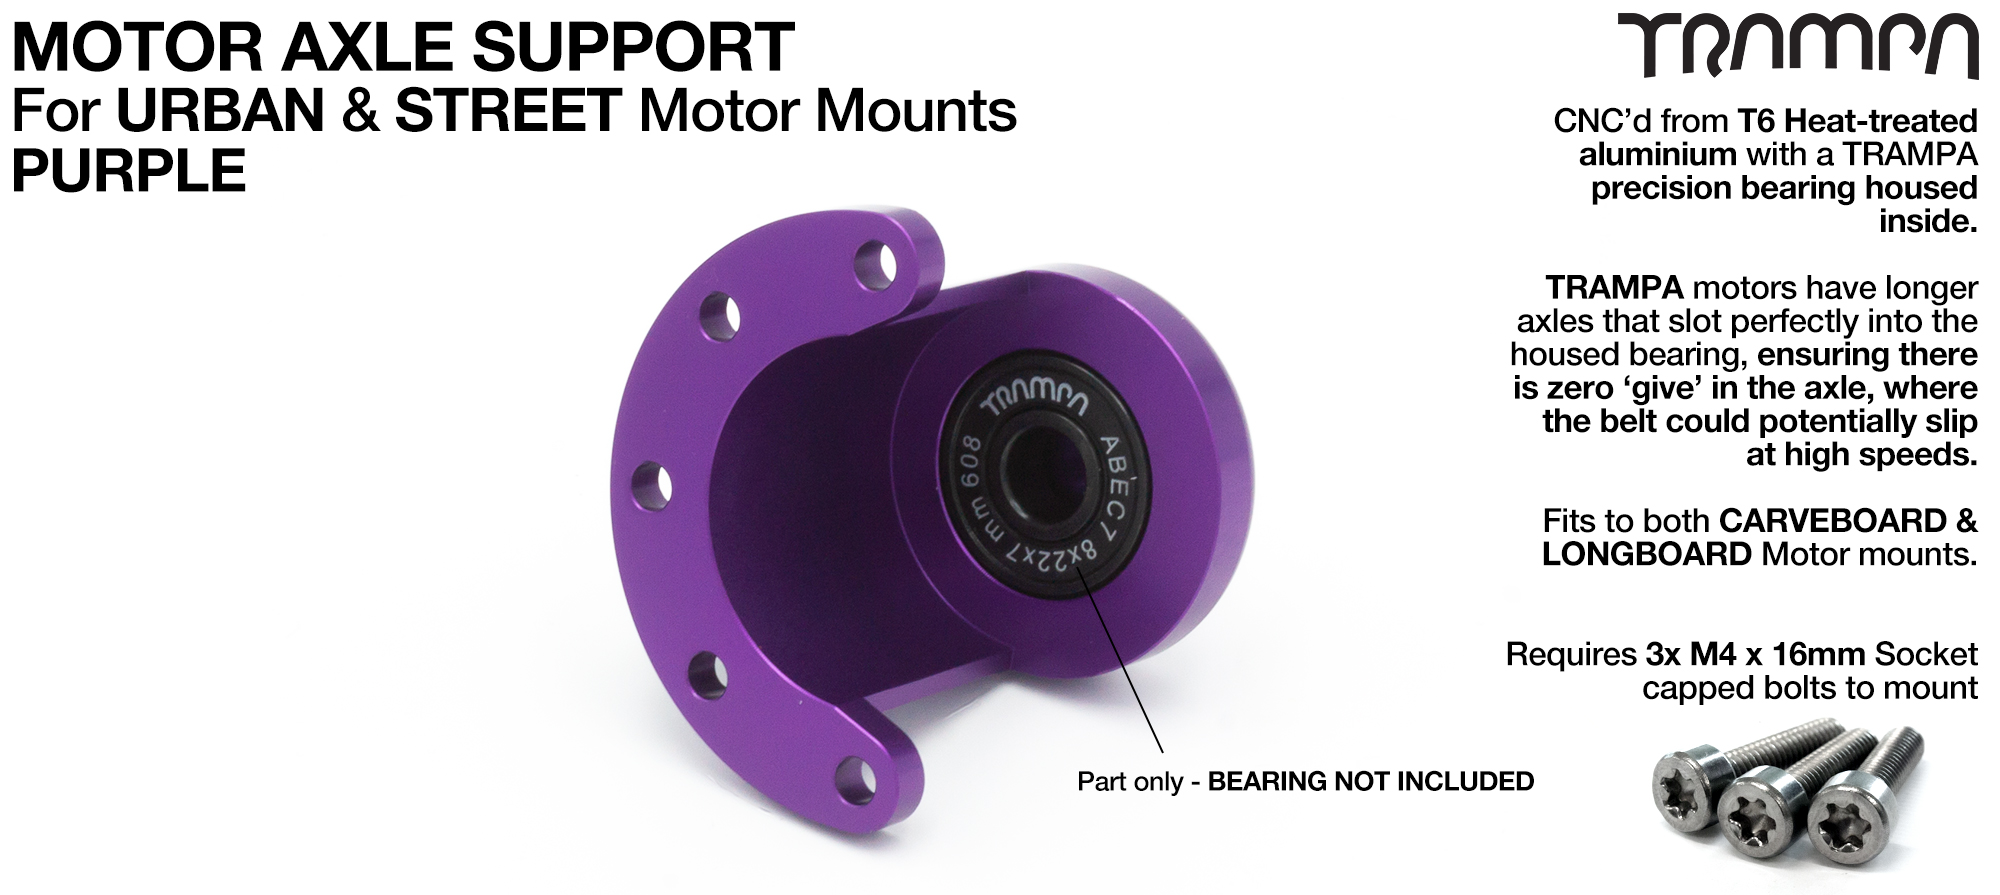 Motor Axle Support for Spring Truck Motor Mounts UNIVERSAL - PURPLE